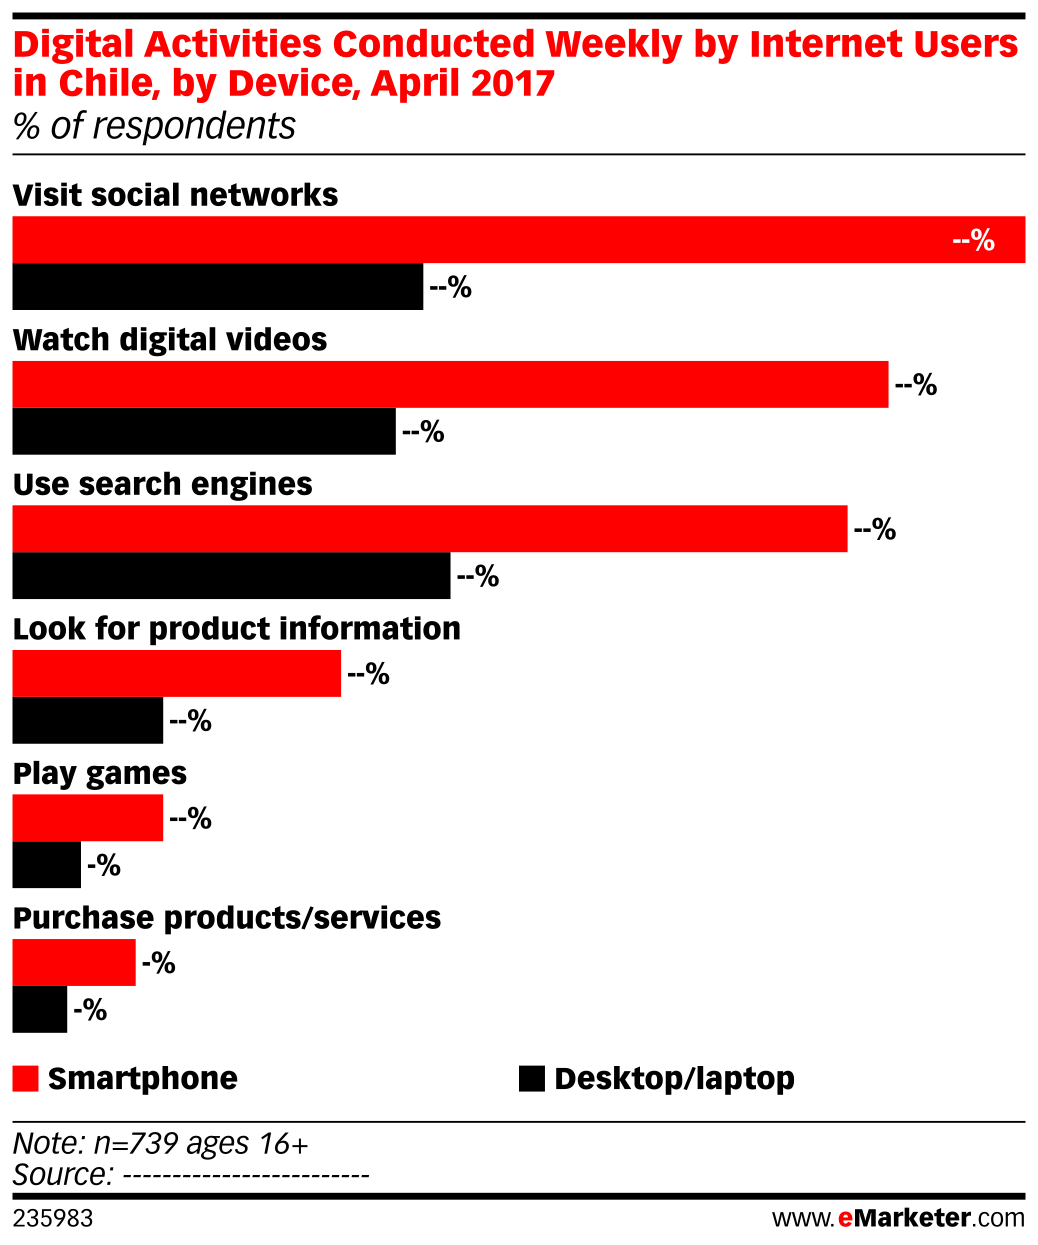 Digital Activities Conducted Weekly by Internet Users in Chile, by Device, April 2017 (% of respondents)